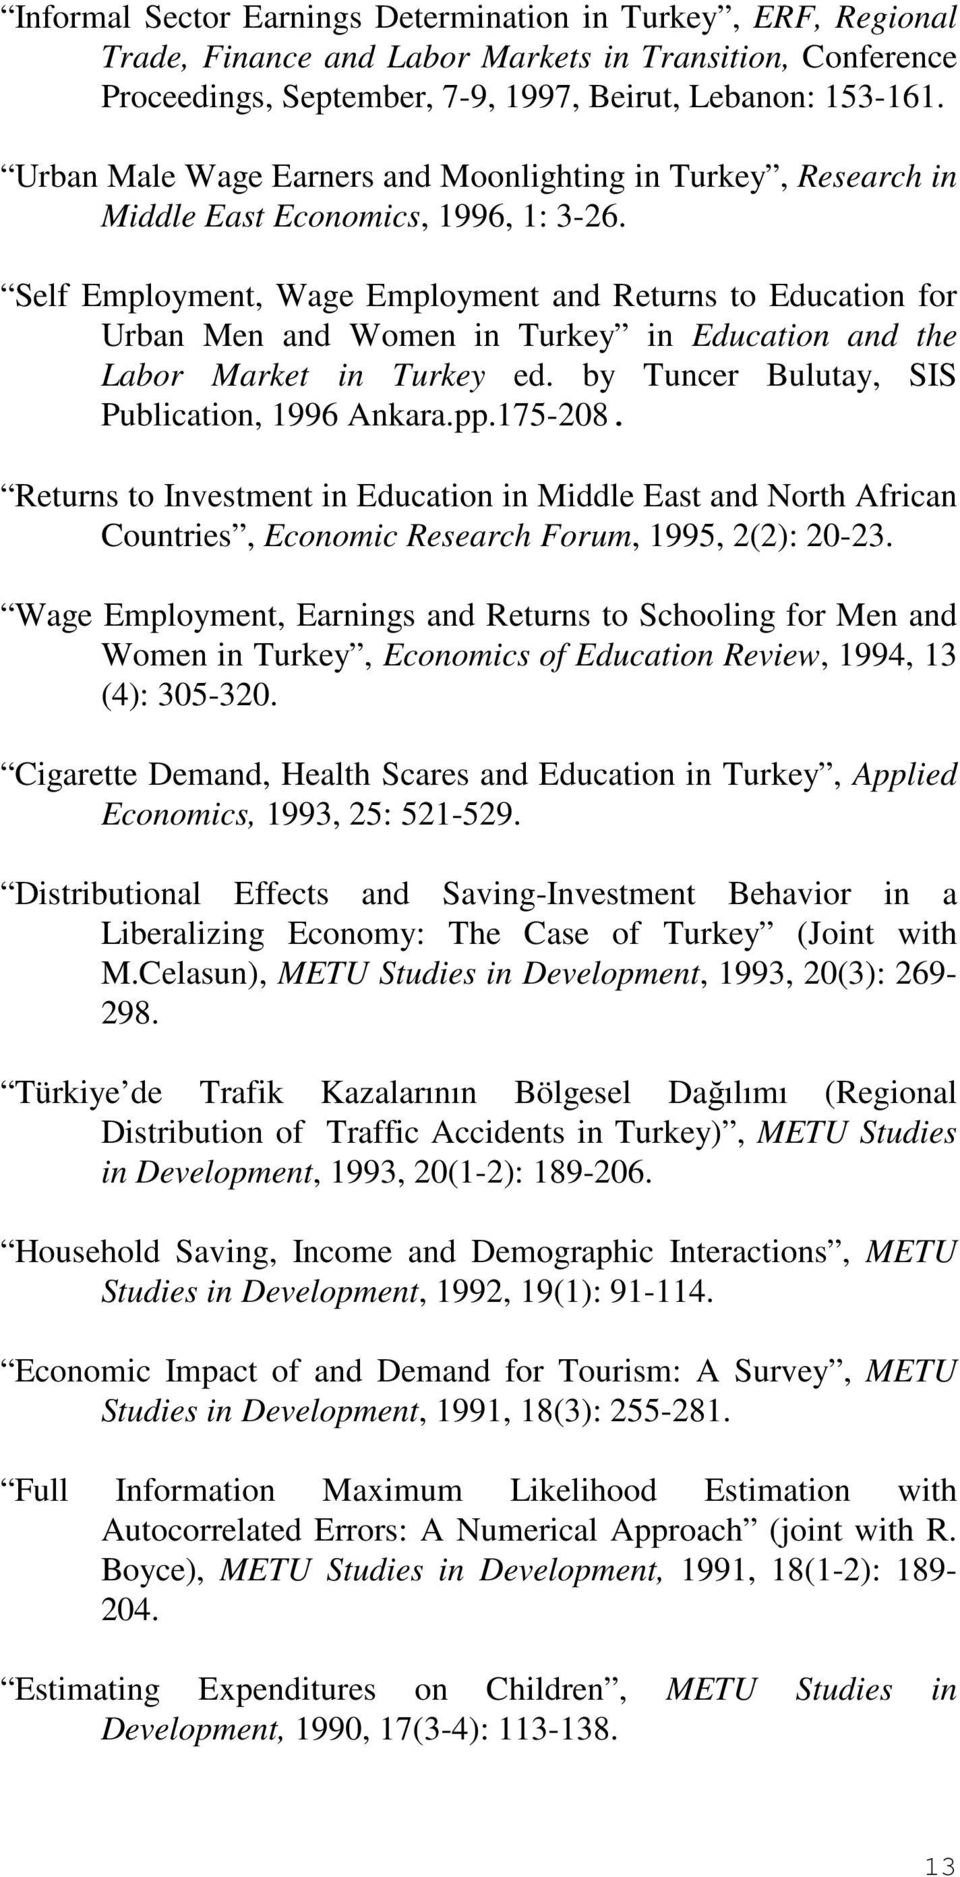 Self Employment, Wage Employment and Returns to Education for Urban Men and Women in Turkey in Education and the Labor Market in Turkey ed. by Tuncer Bulutay, SIS Publication, 1996 Ankara.pp.175-208.